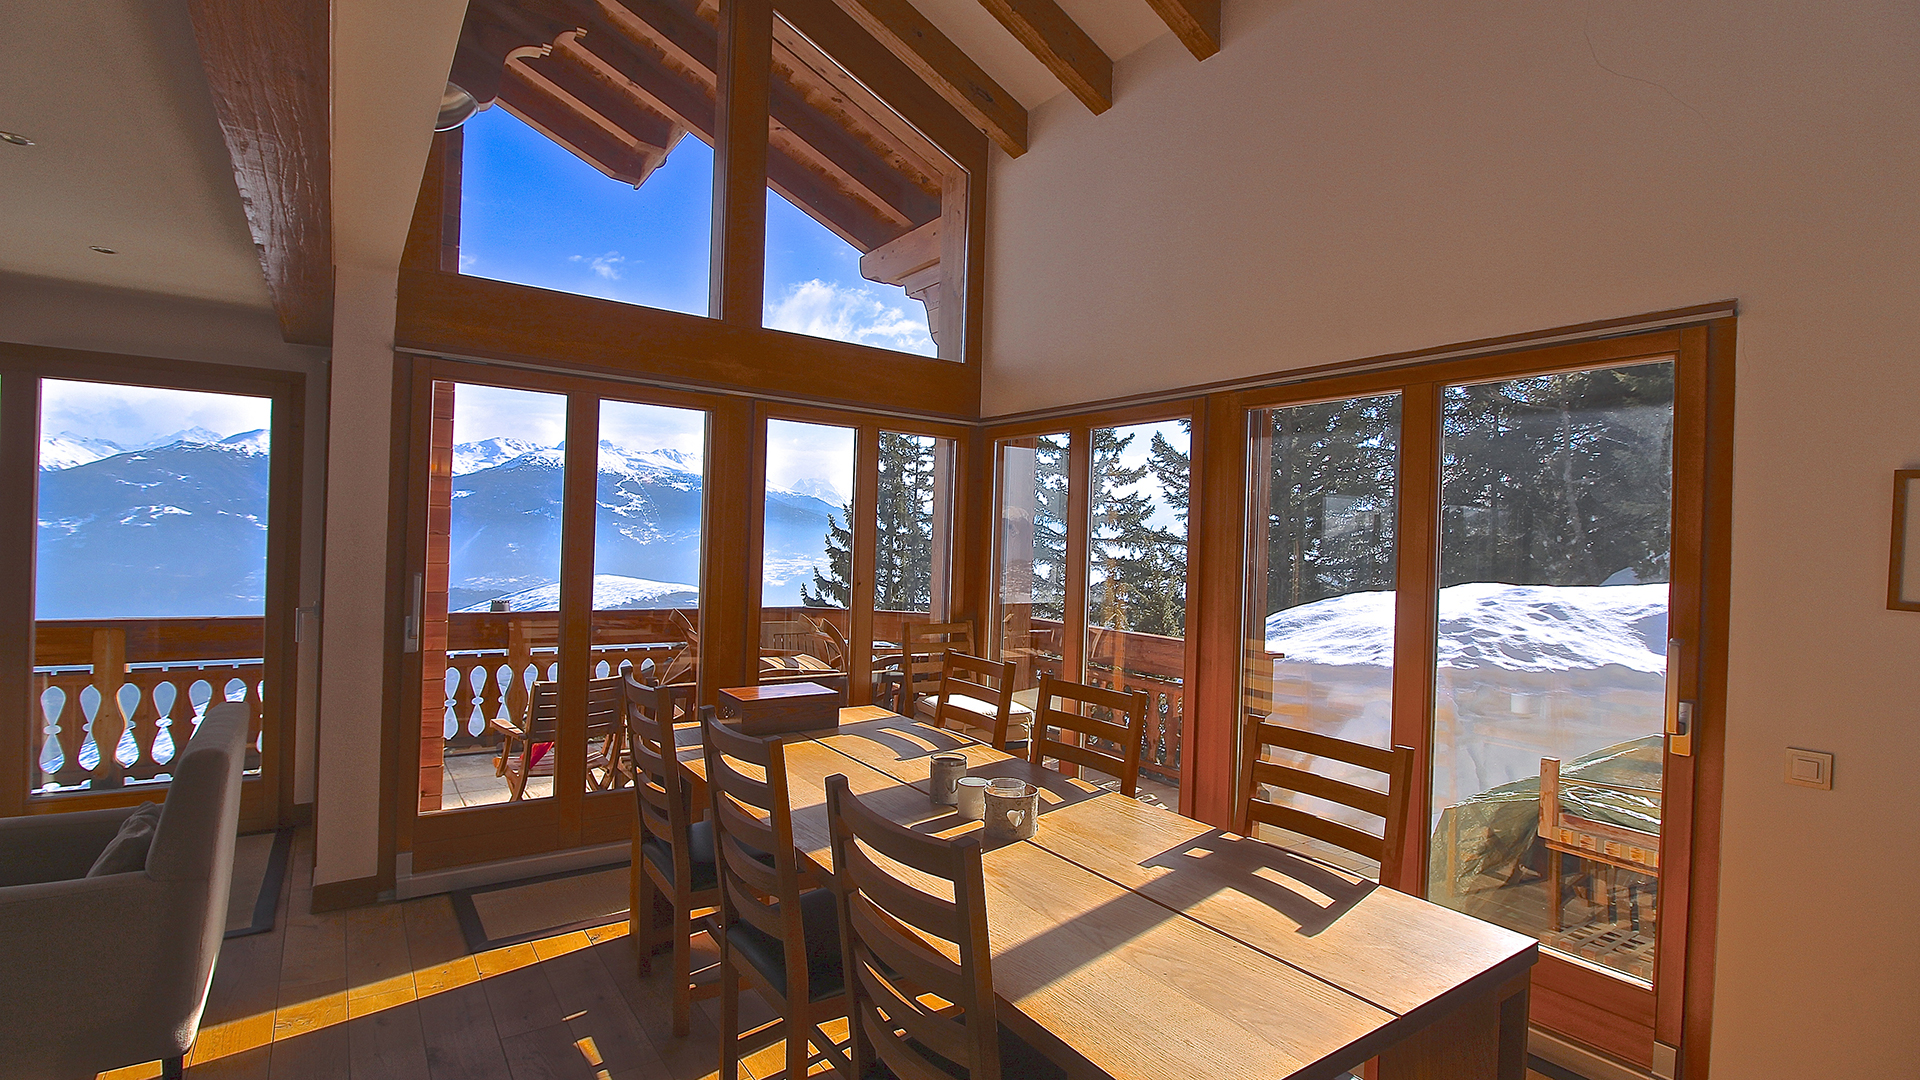 Chalet Ibex Chalet, Switzerland